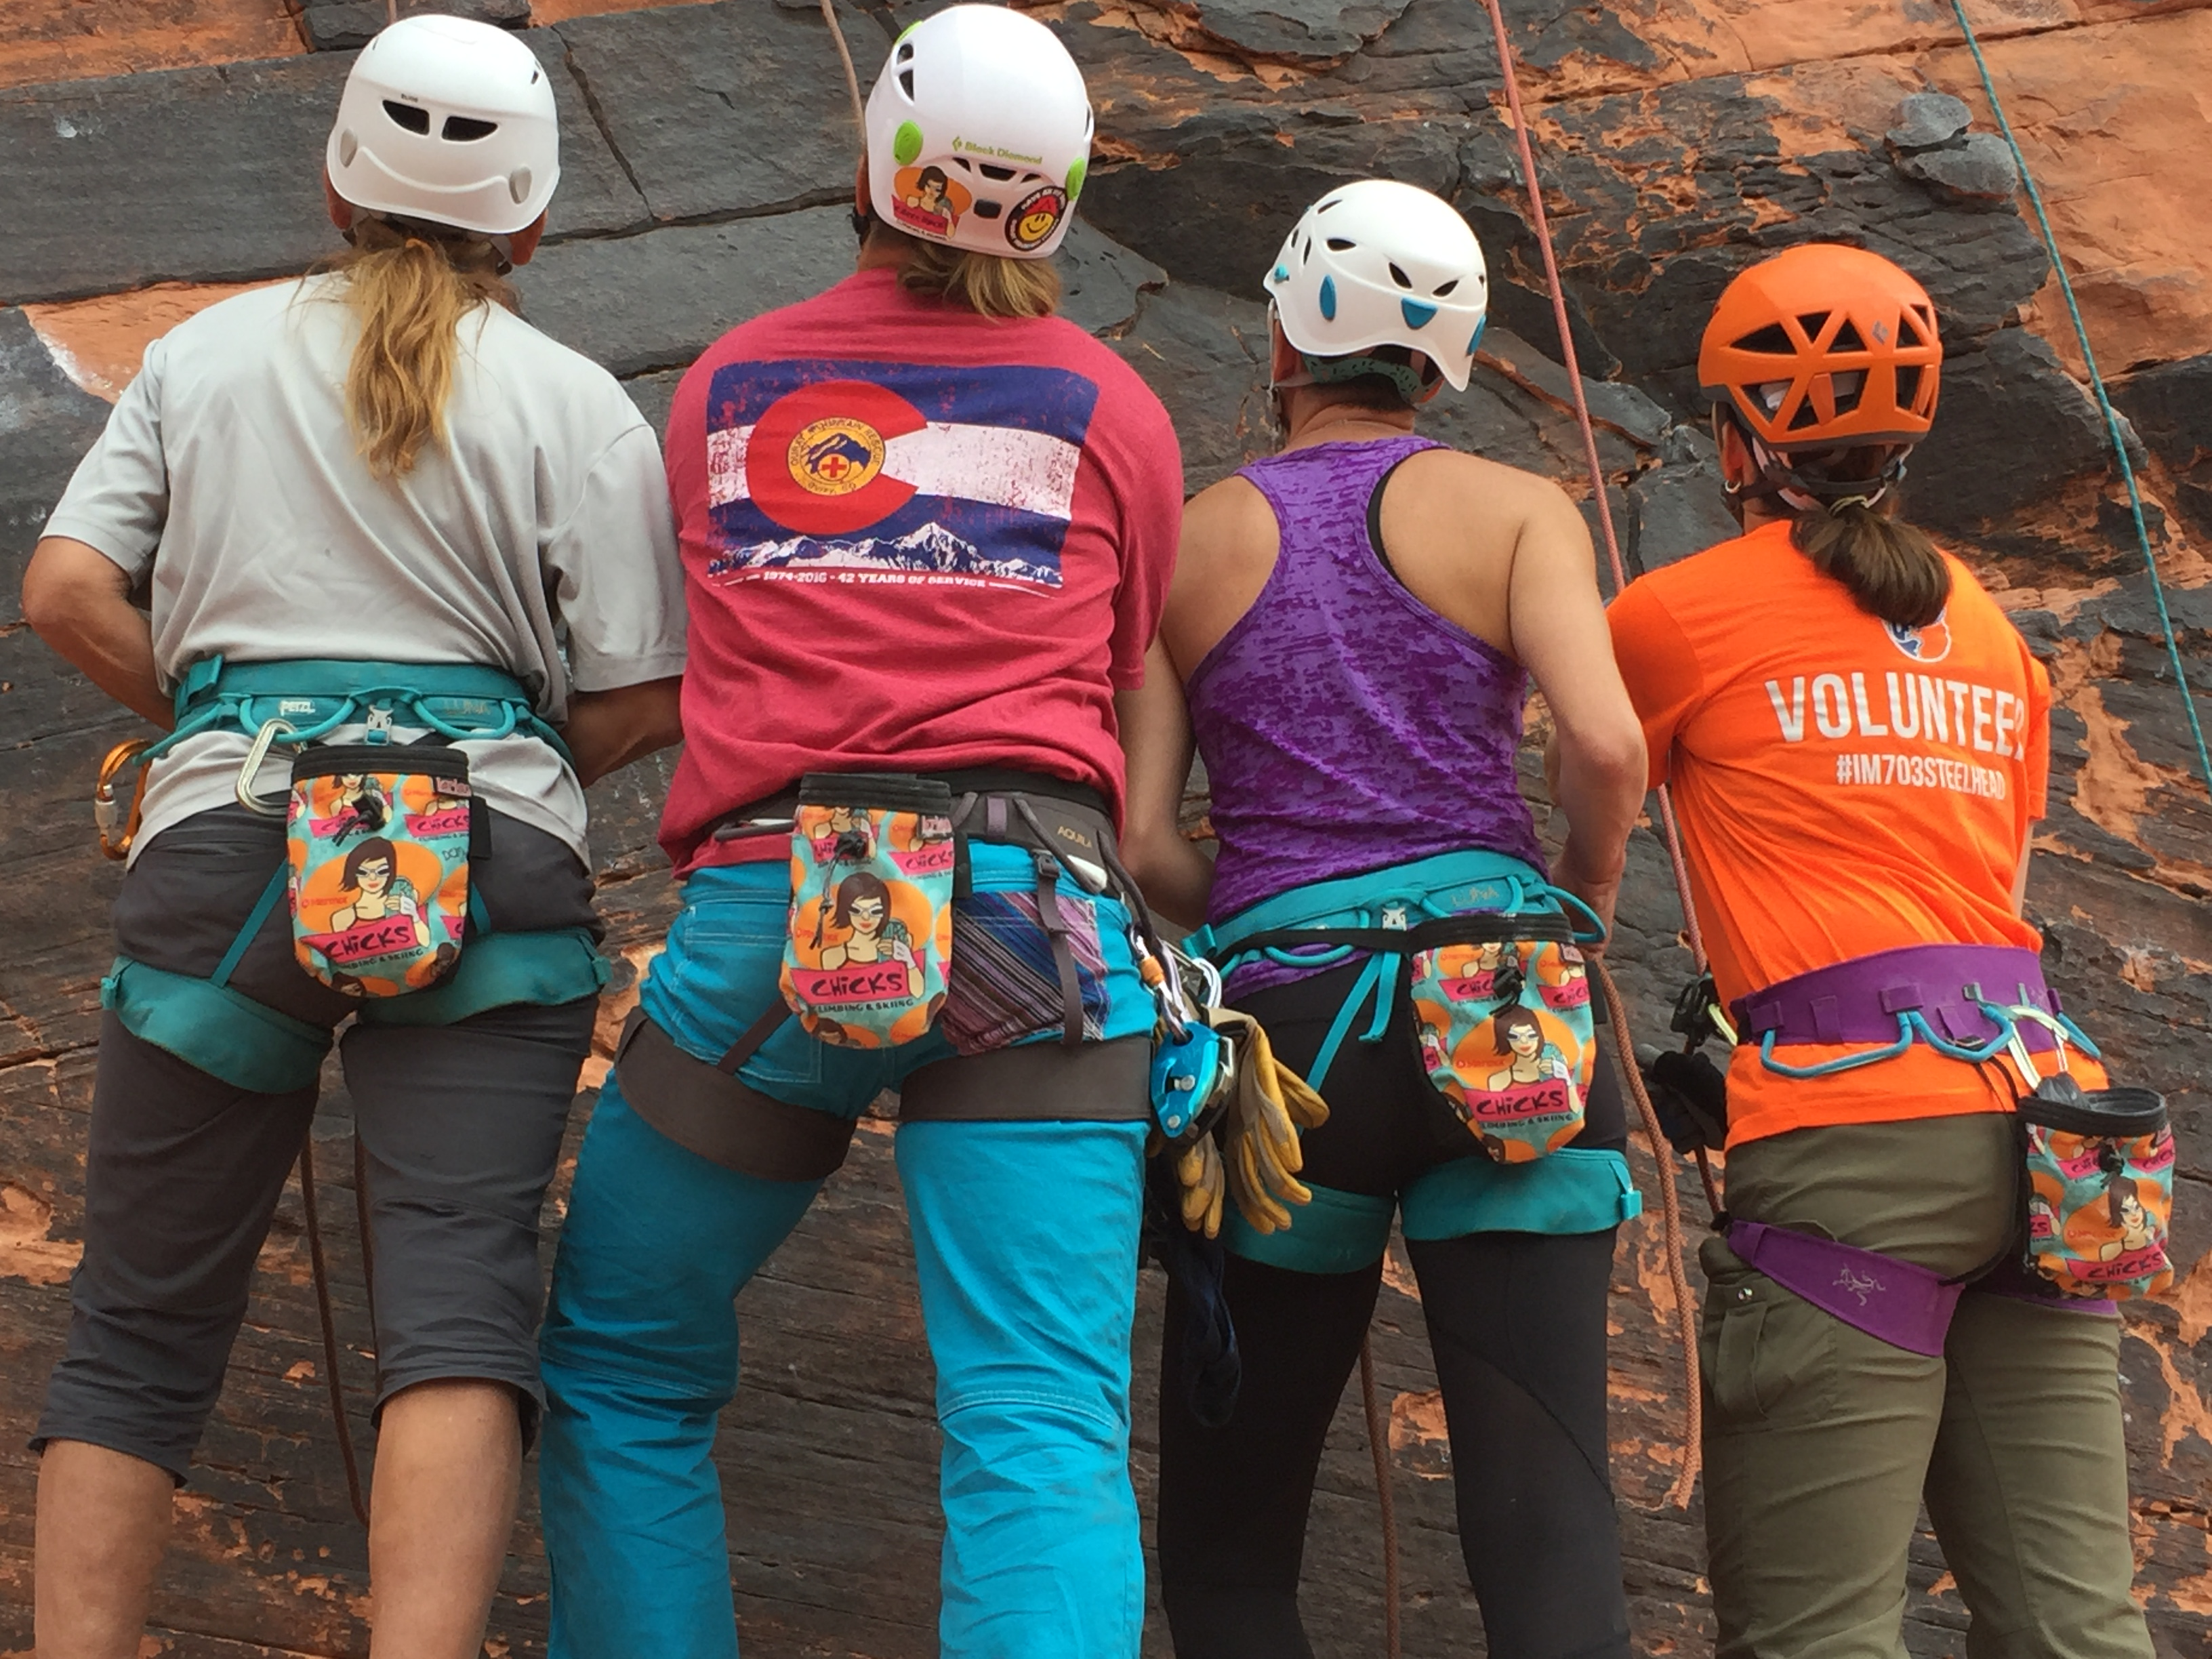 Find more climbing partners at a Chicks Climbing clinic. 4 Chicks participants lined up to show off their Chicks chalk bags